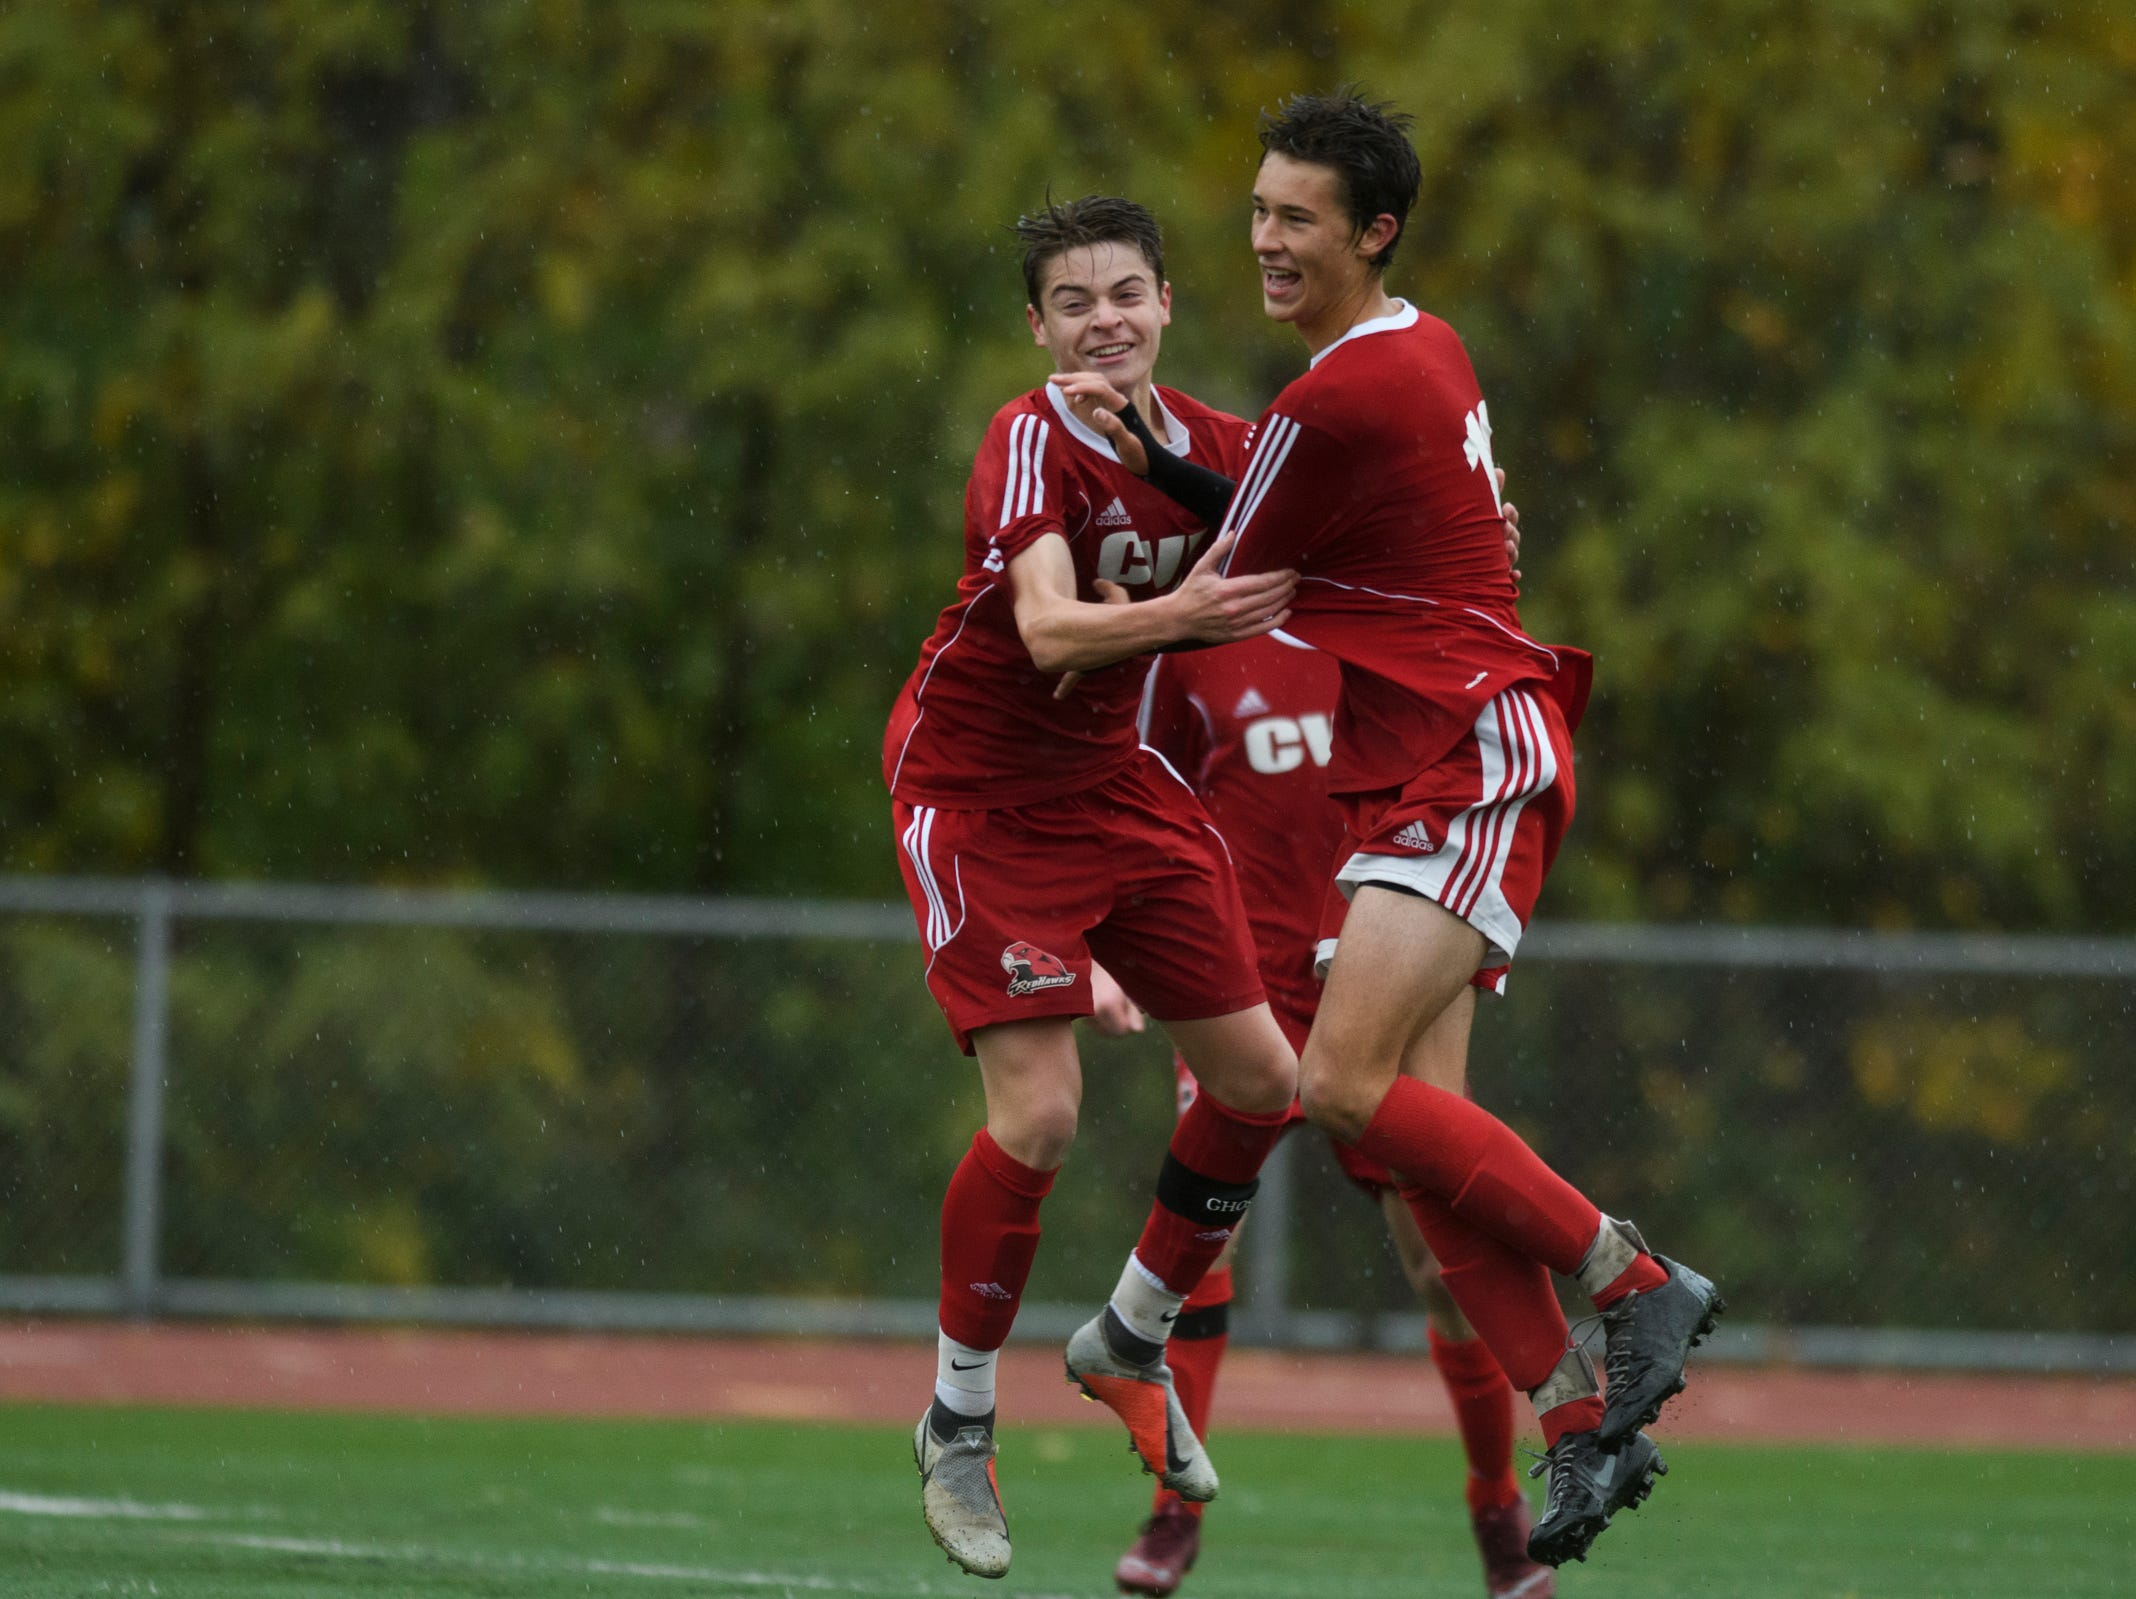 CVU celebrates the win during the Division I boys soccer championship game between the St. Johnsbury Hilltoppers and the Champlain Valley Union Redhawks at Buck Hard Field on Saturday morning November 3, 2018 in Burlington.